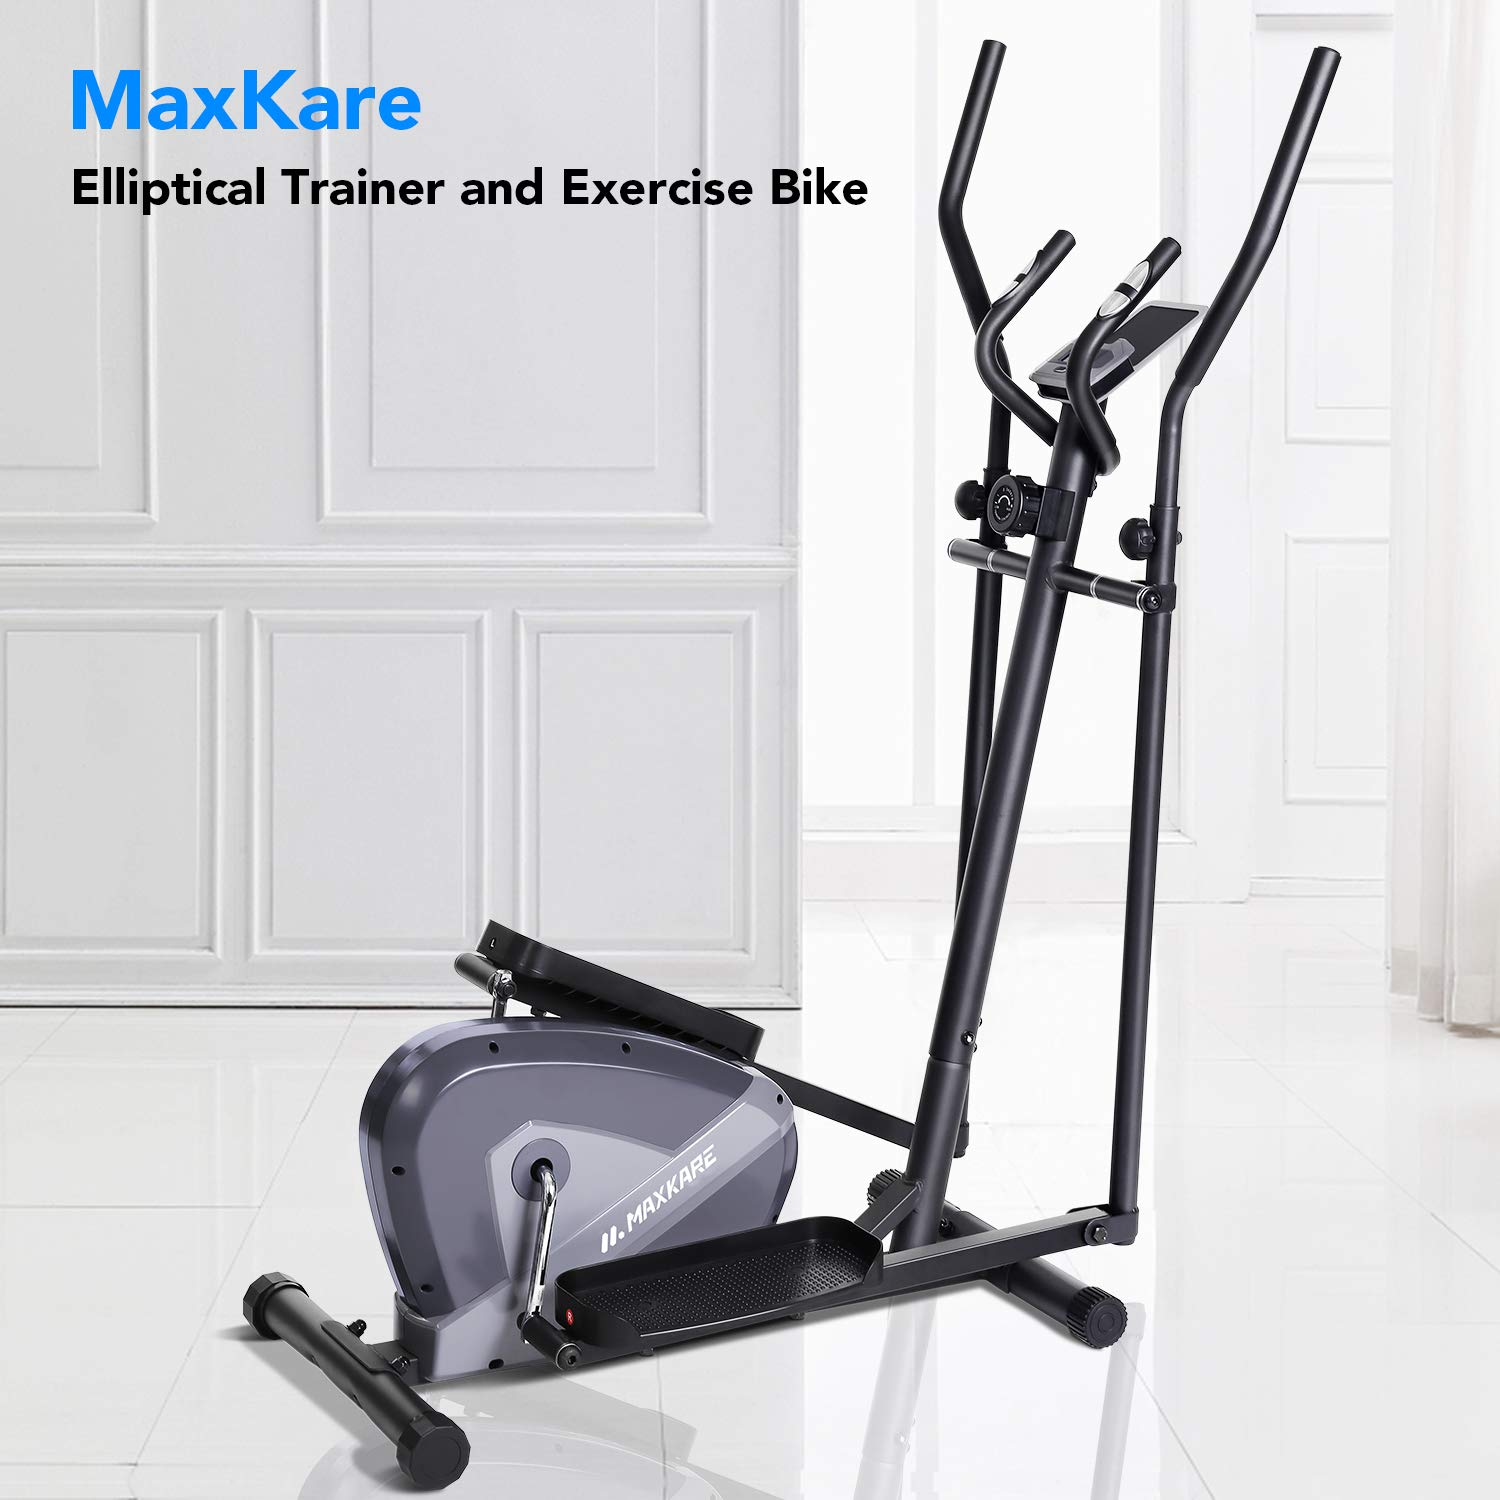 MaxKare Exercise Bike Cardio Training Elliptical Trainers-Portable Upright Fitness Workout Bike Machine,8-Level Magnetic Resistance,LCD Monitor,Heart Rate Monitor,Quiet Driven,Calories Burned by MaxKare (Image #6)